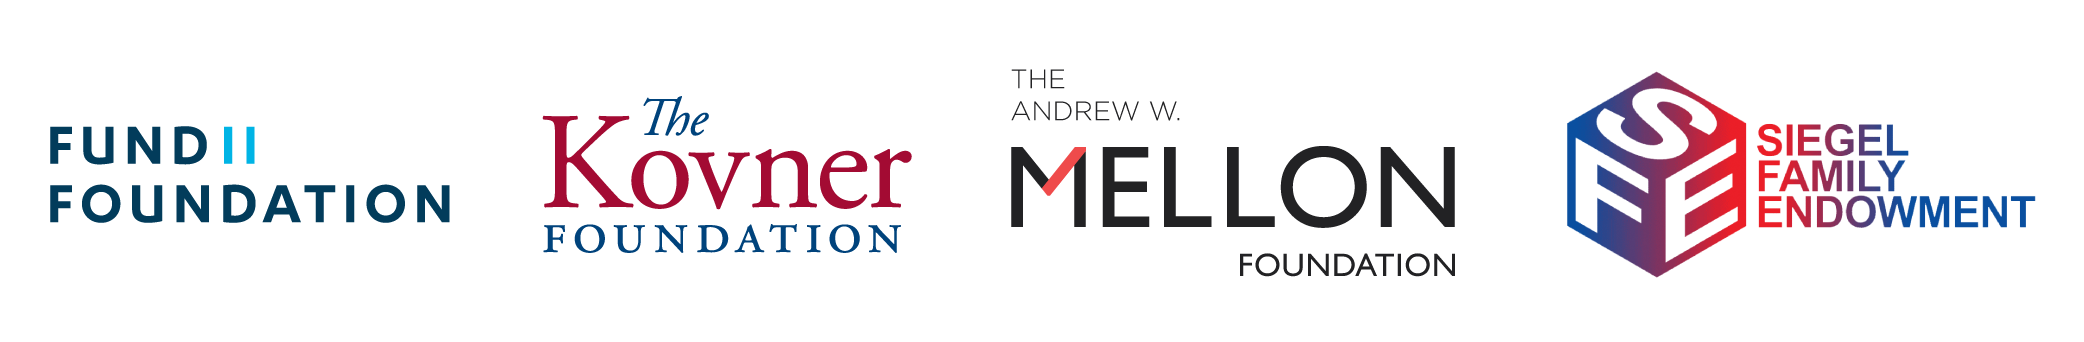 Fund II Foundation, The Kovner Foundation, The Andrew W. Mellon Foundation, Siegel Family Endowment